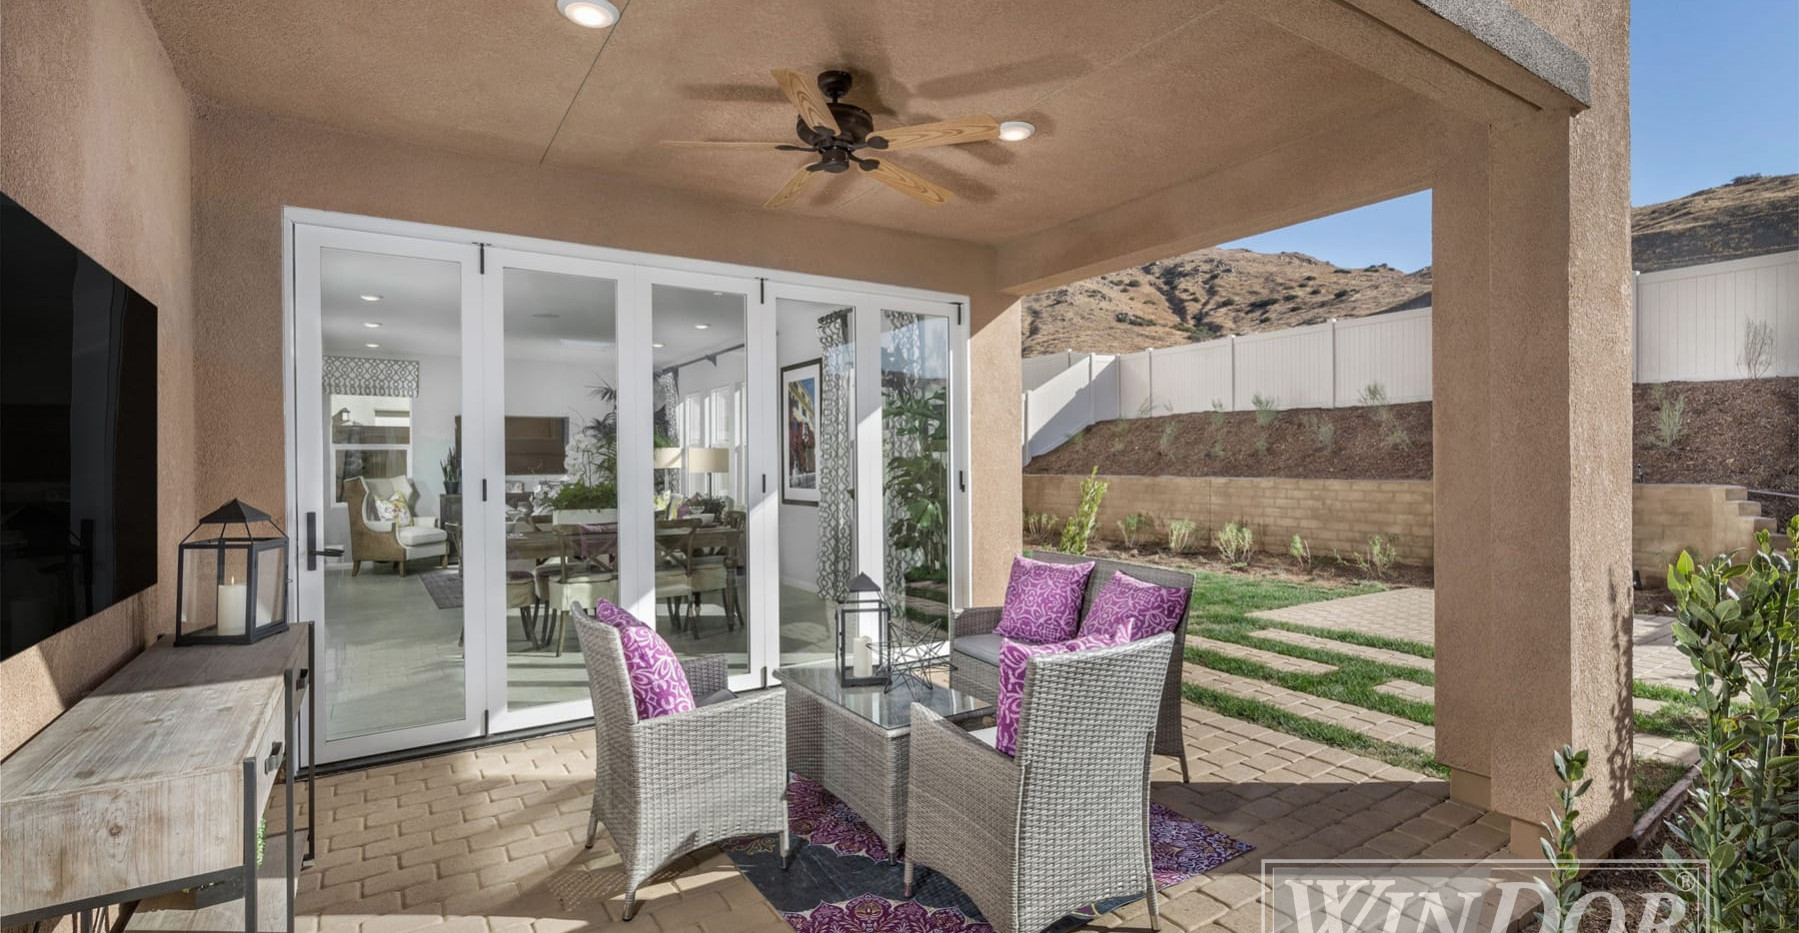 KBIE_Sorrel-Terramor_Res3-Patio-ClosedSl